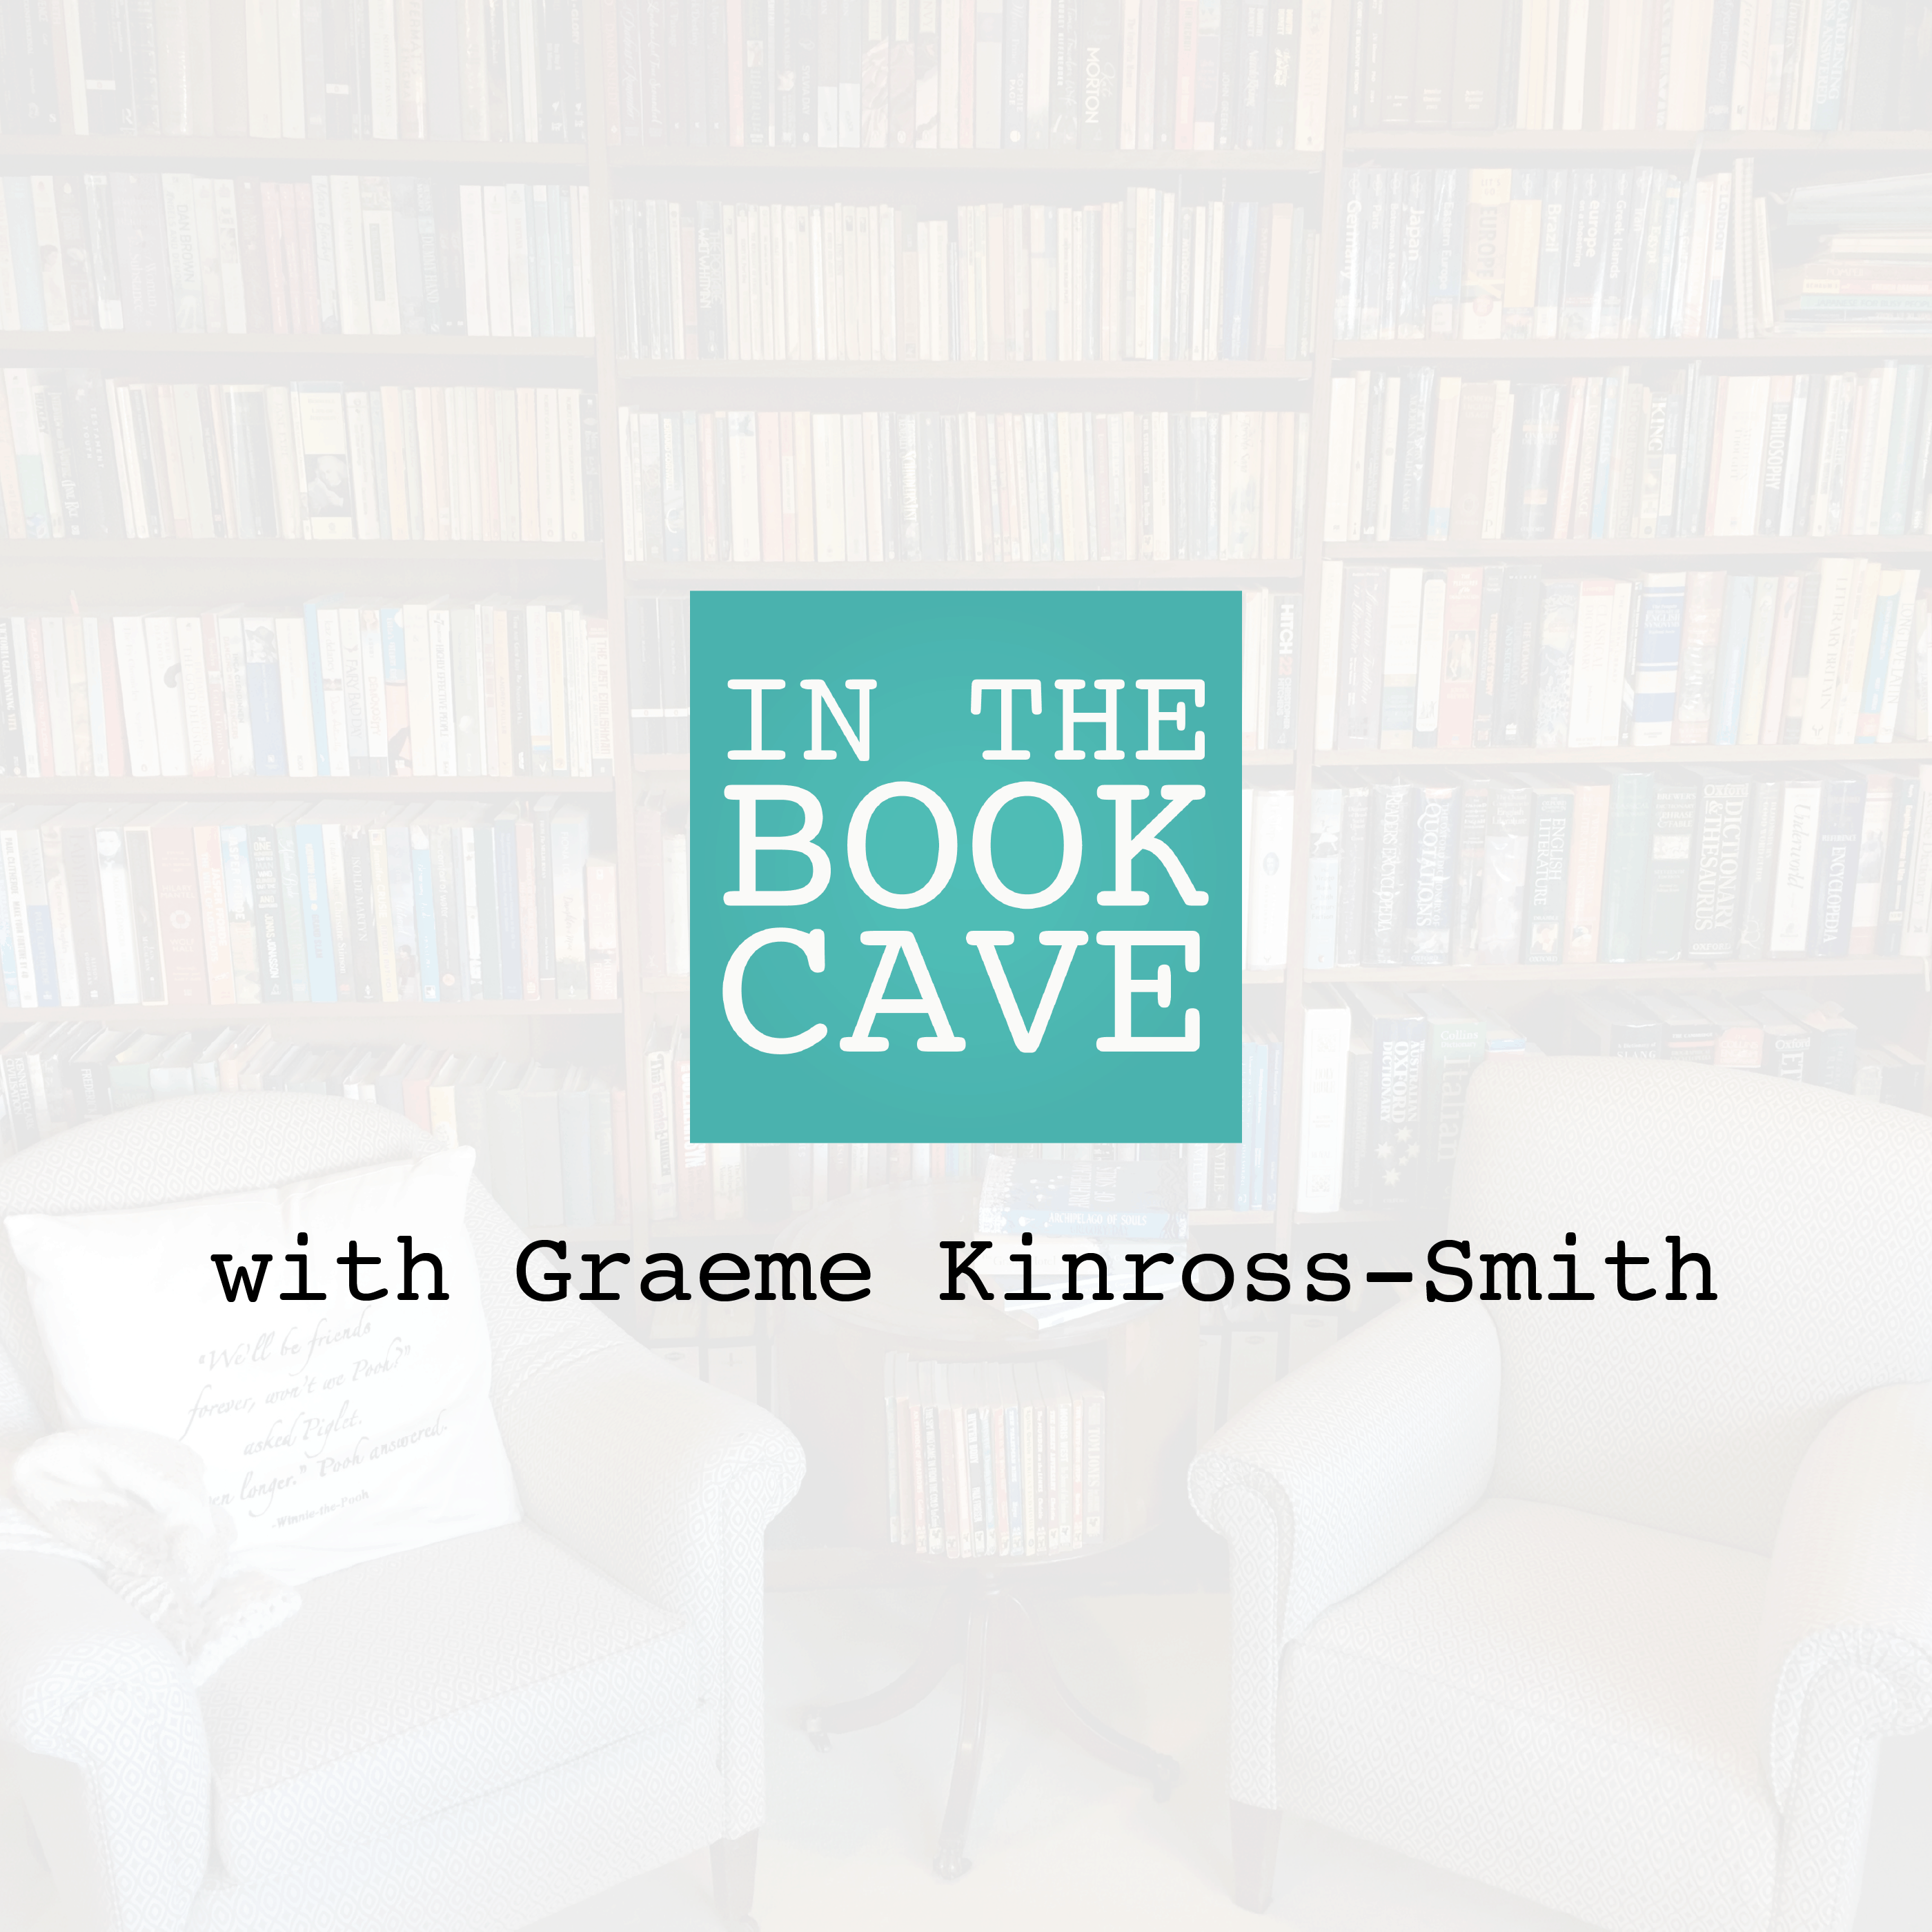 In the Book Cave with Graeme Kinross-Smith